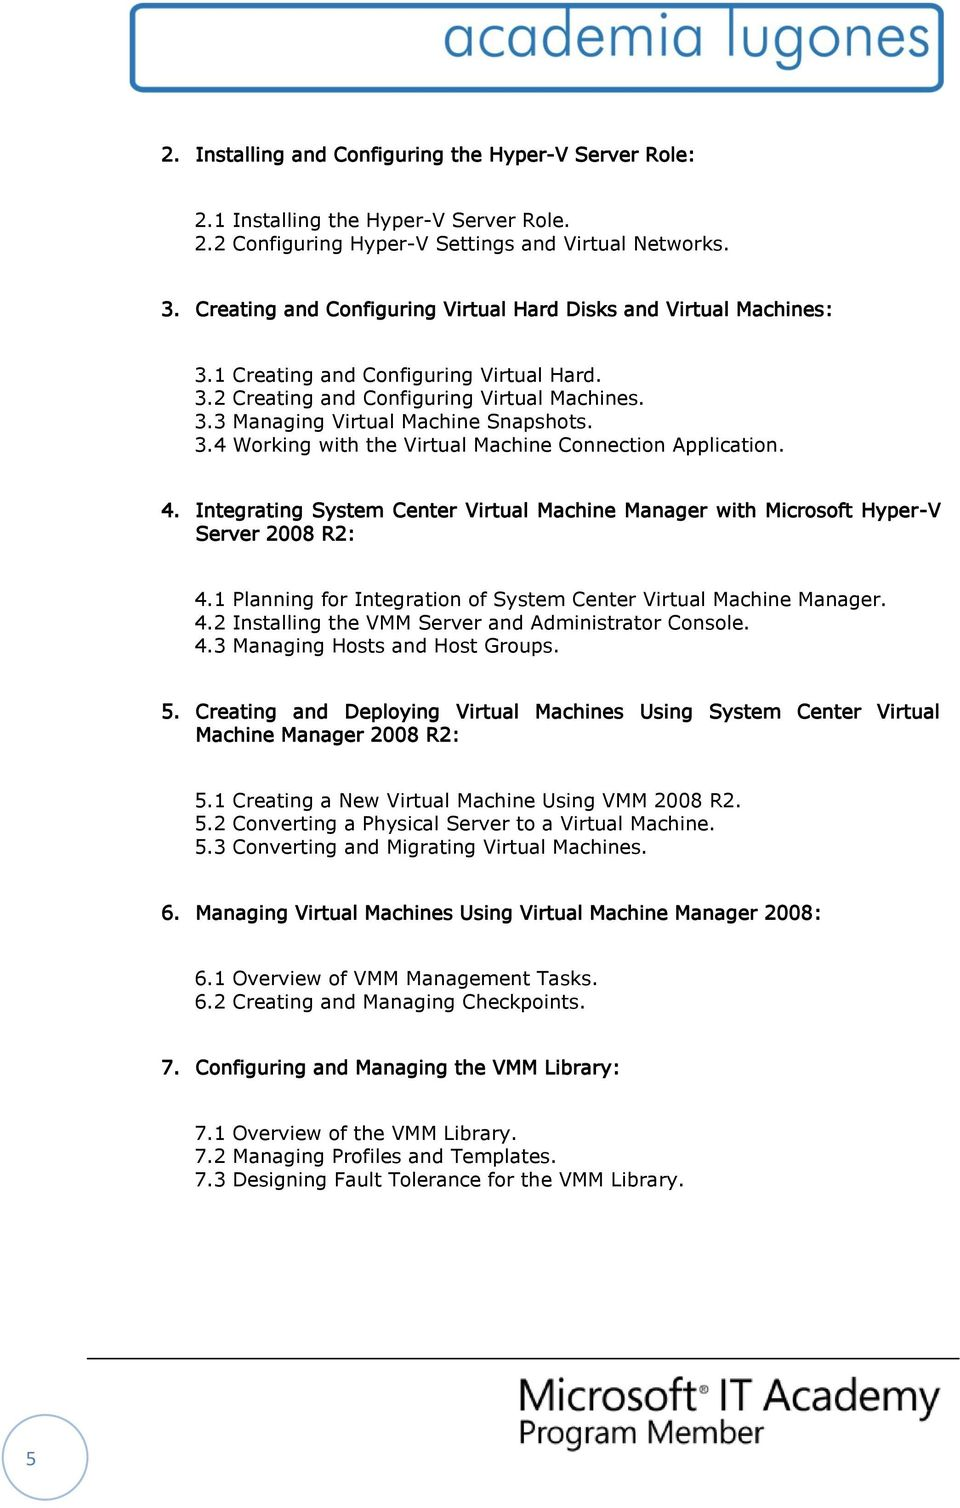 4. Integrating System Center Virtual Machine Manager with Microsoft Hyper-V Server 2008 R2: 4.1 Planning for Integration of System Center Virtual Machine Manager. 4.2 Installing the VMM Server and Administrator Console.